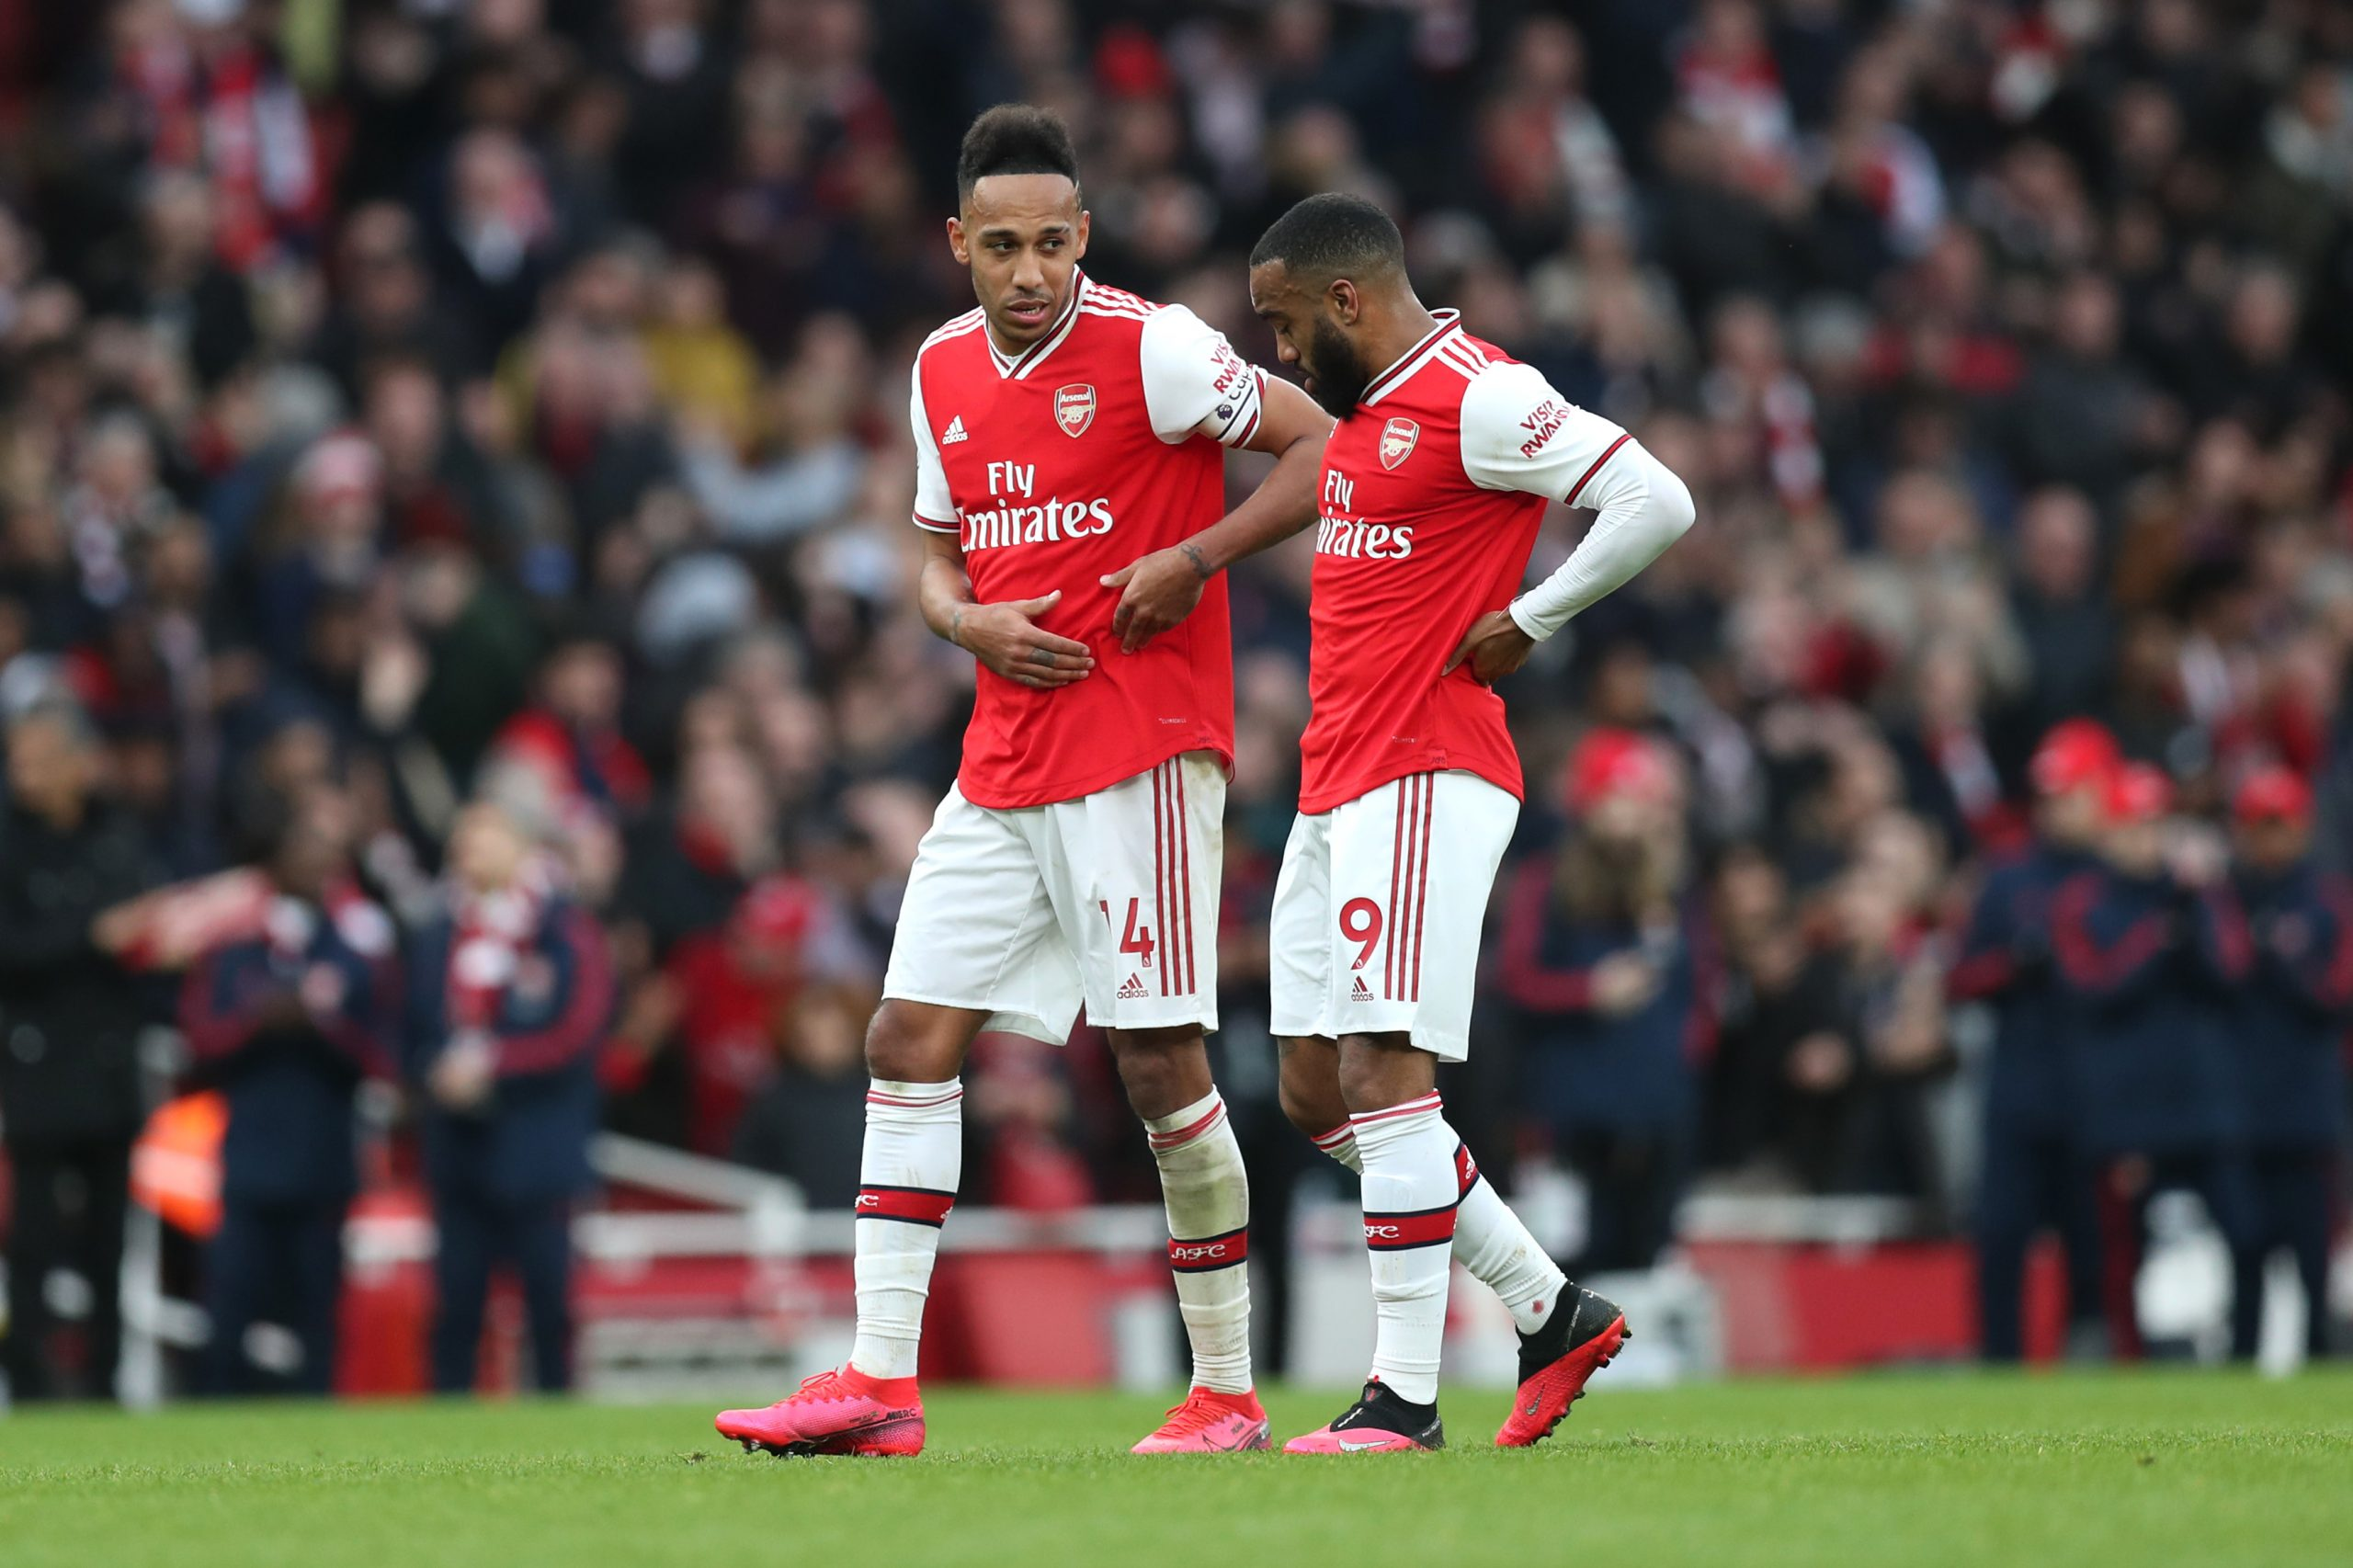 Pierre-Emerick Aubameyang and Alexandre Lacazette of Arsenal talk following their sides victory in the Premier League match between Arsenal FC and West Ham United at Emirates Stadium on March 07, 2020 in London, United Kingdom.